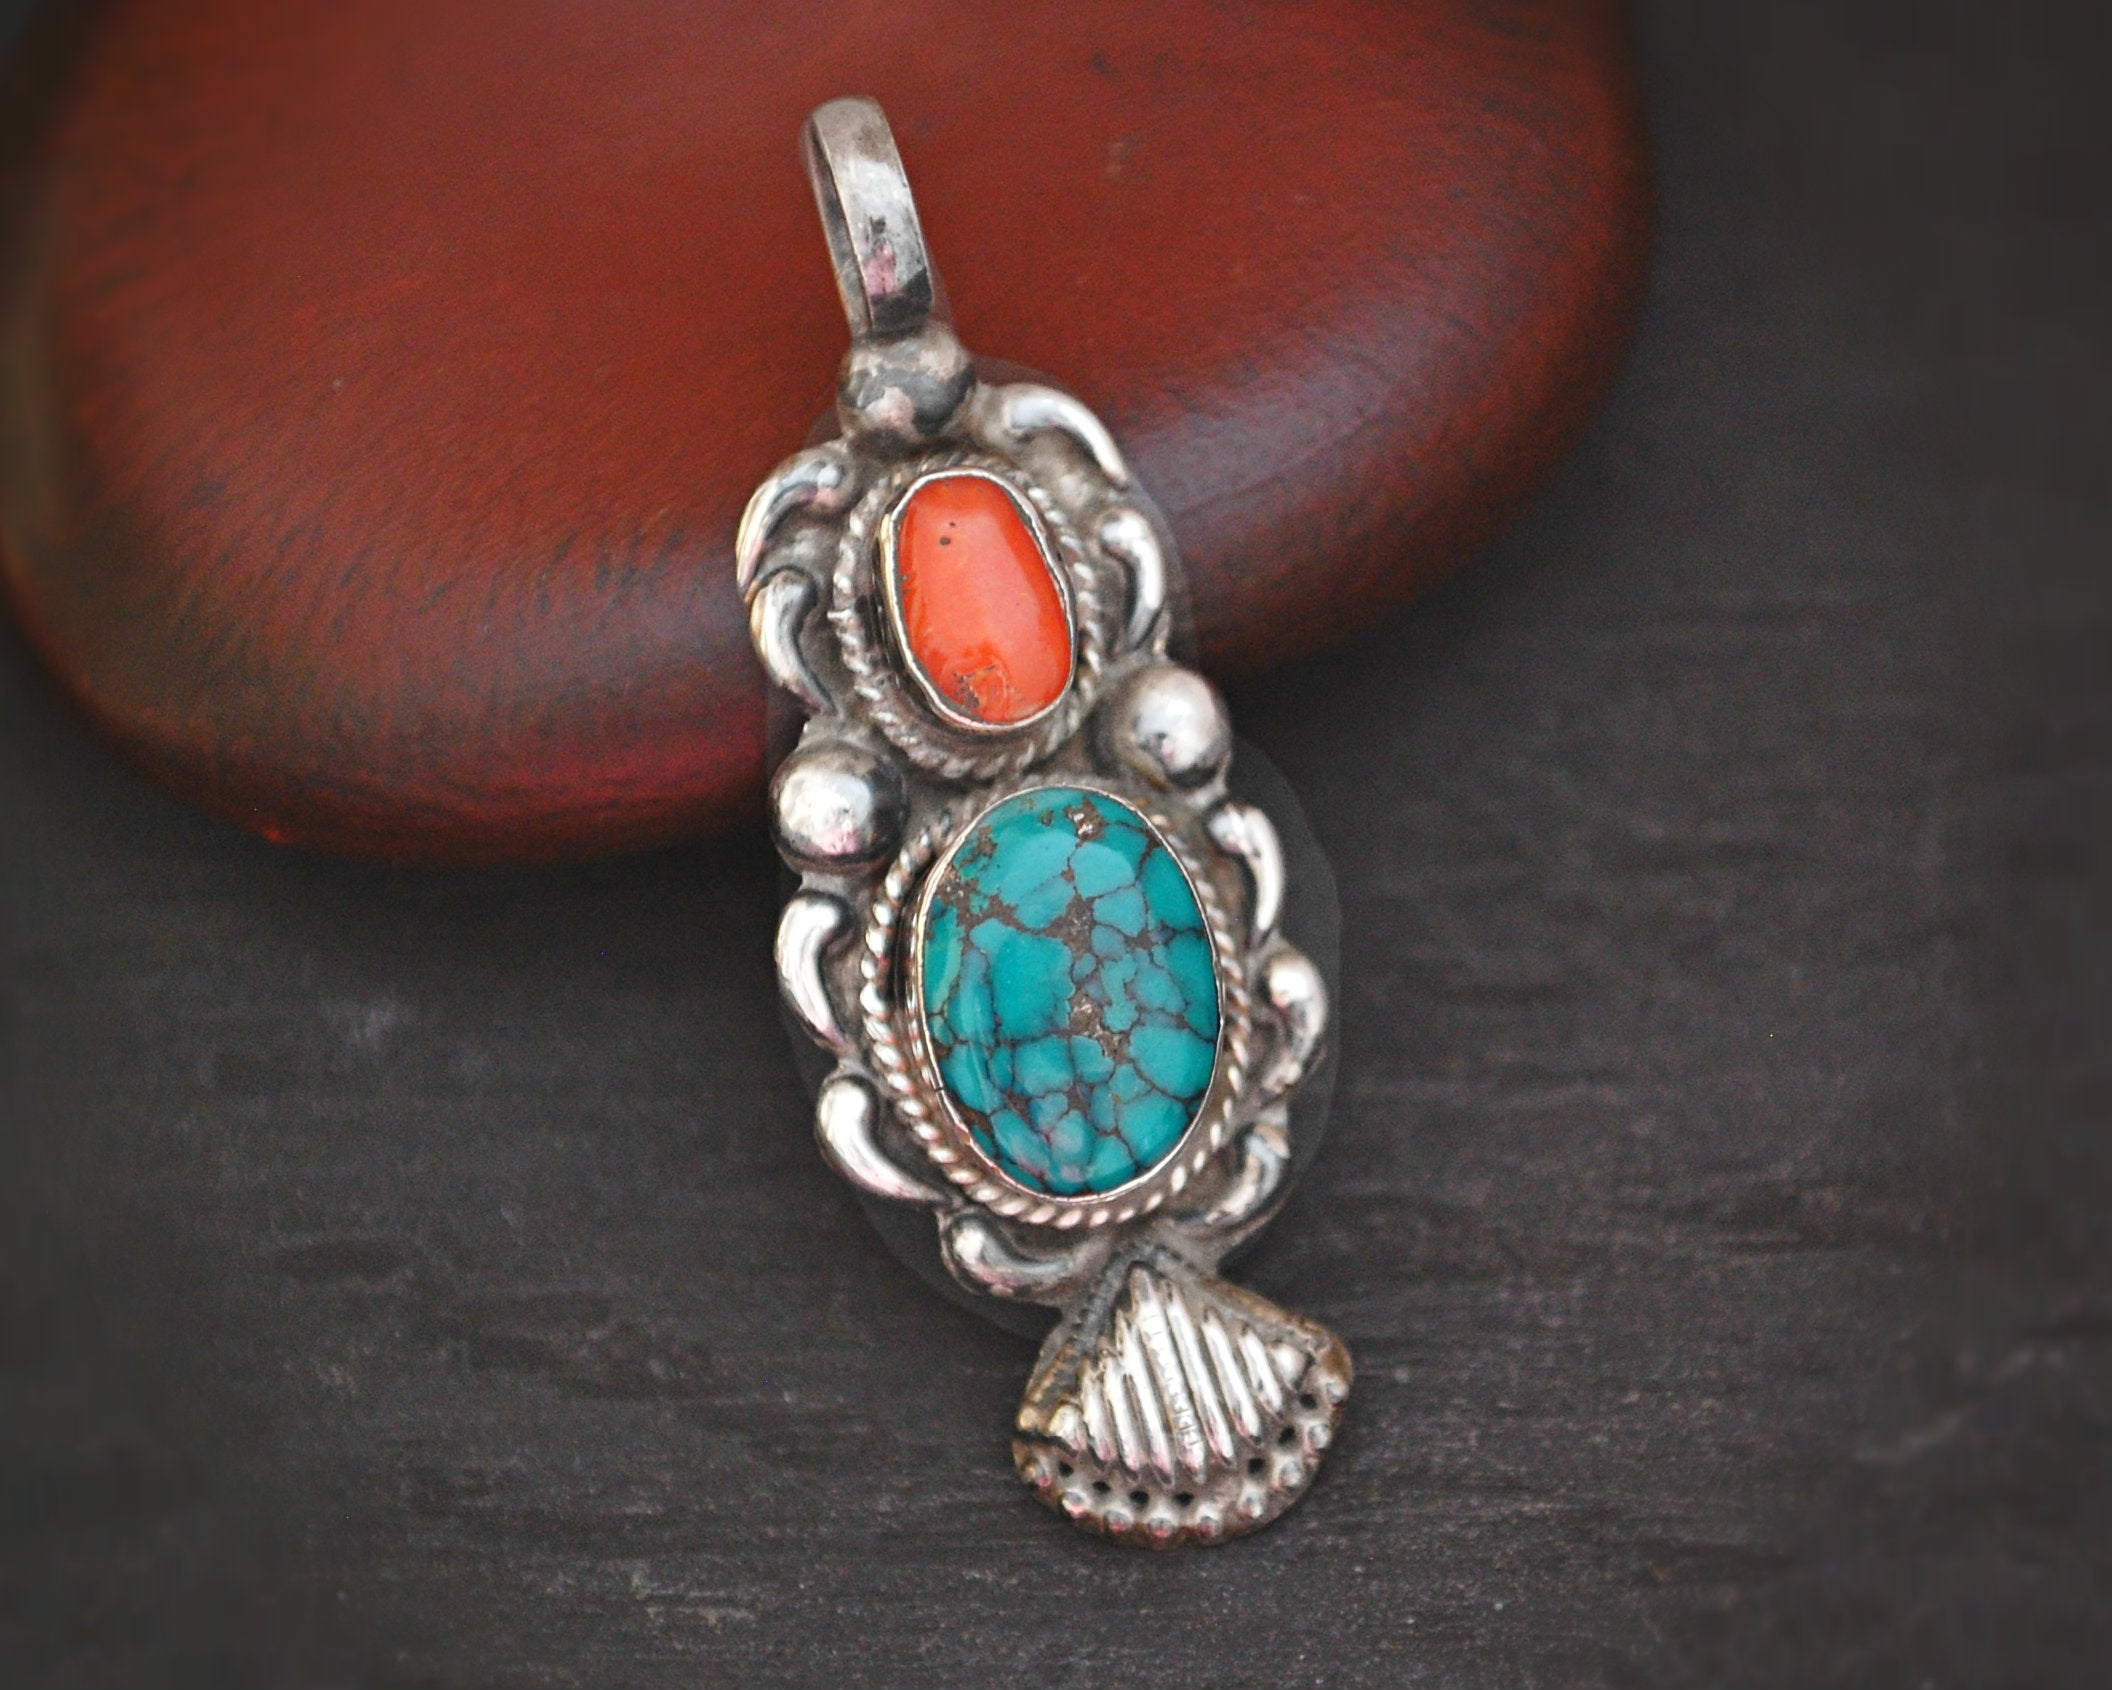 Turquoise and Coral Pendant from India